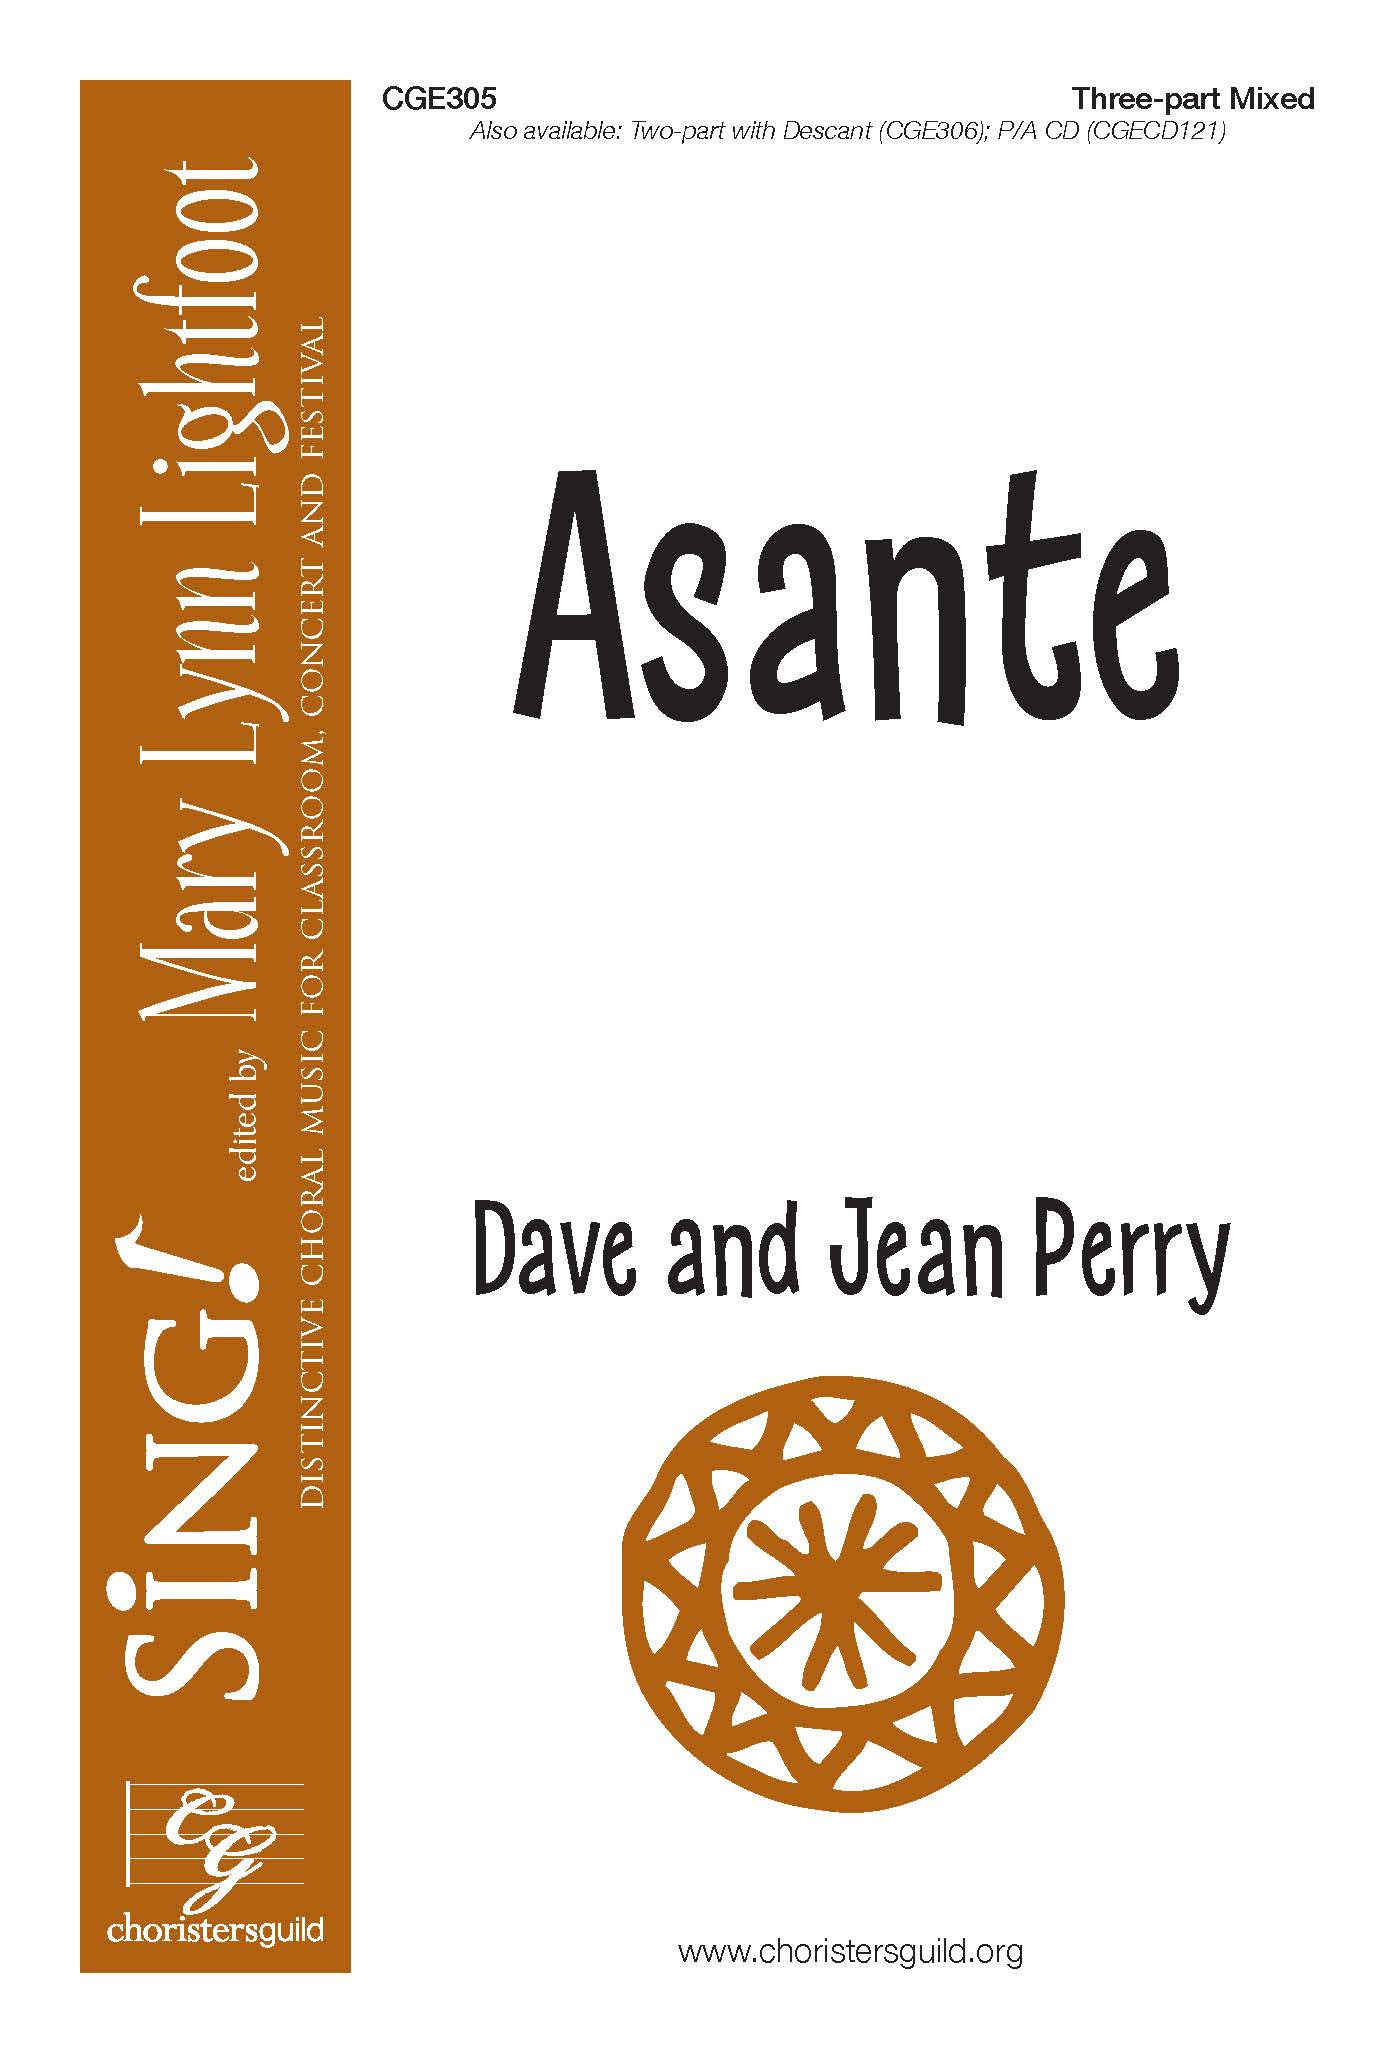 Asante - Three-part Mixed